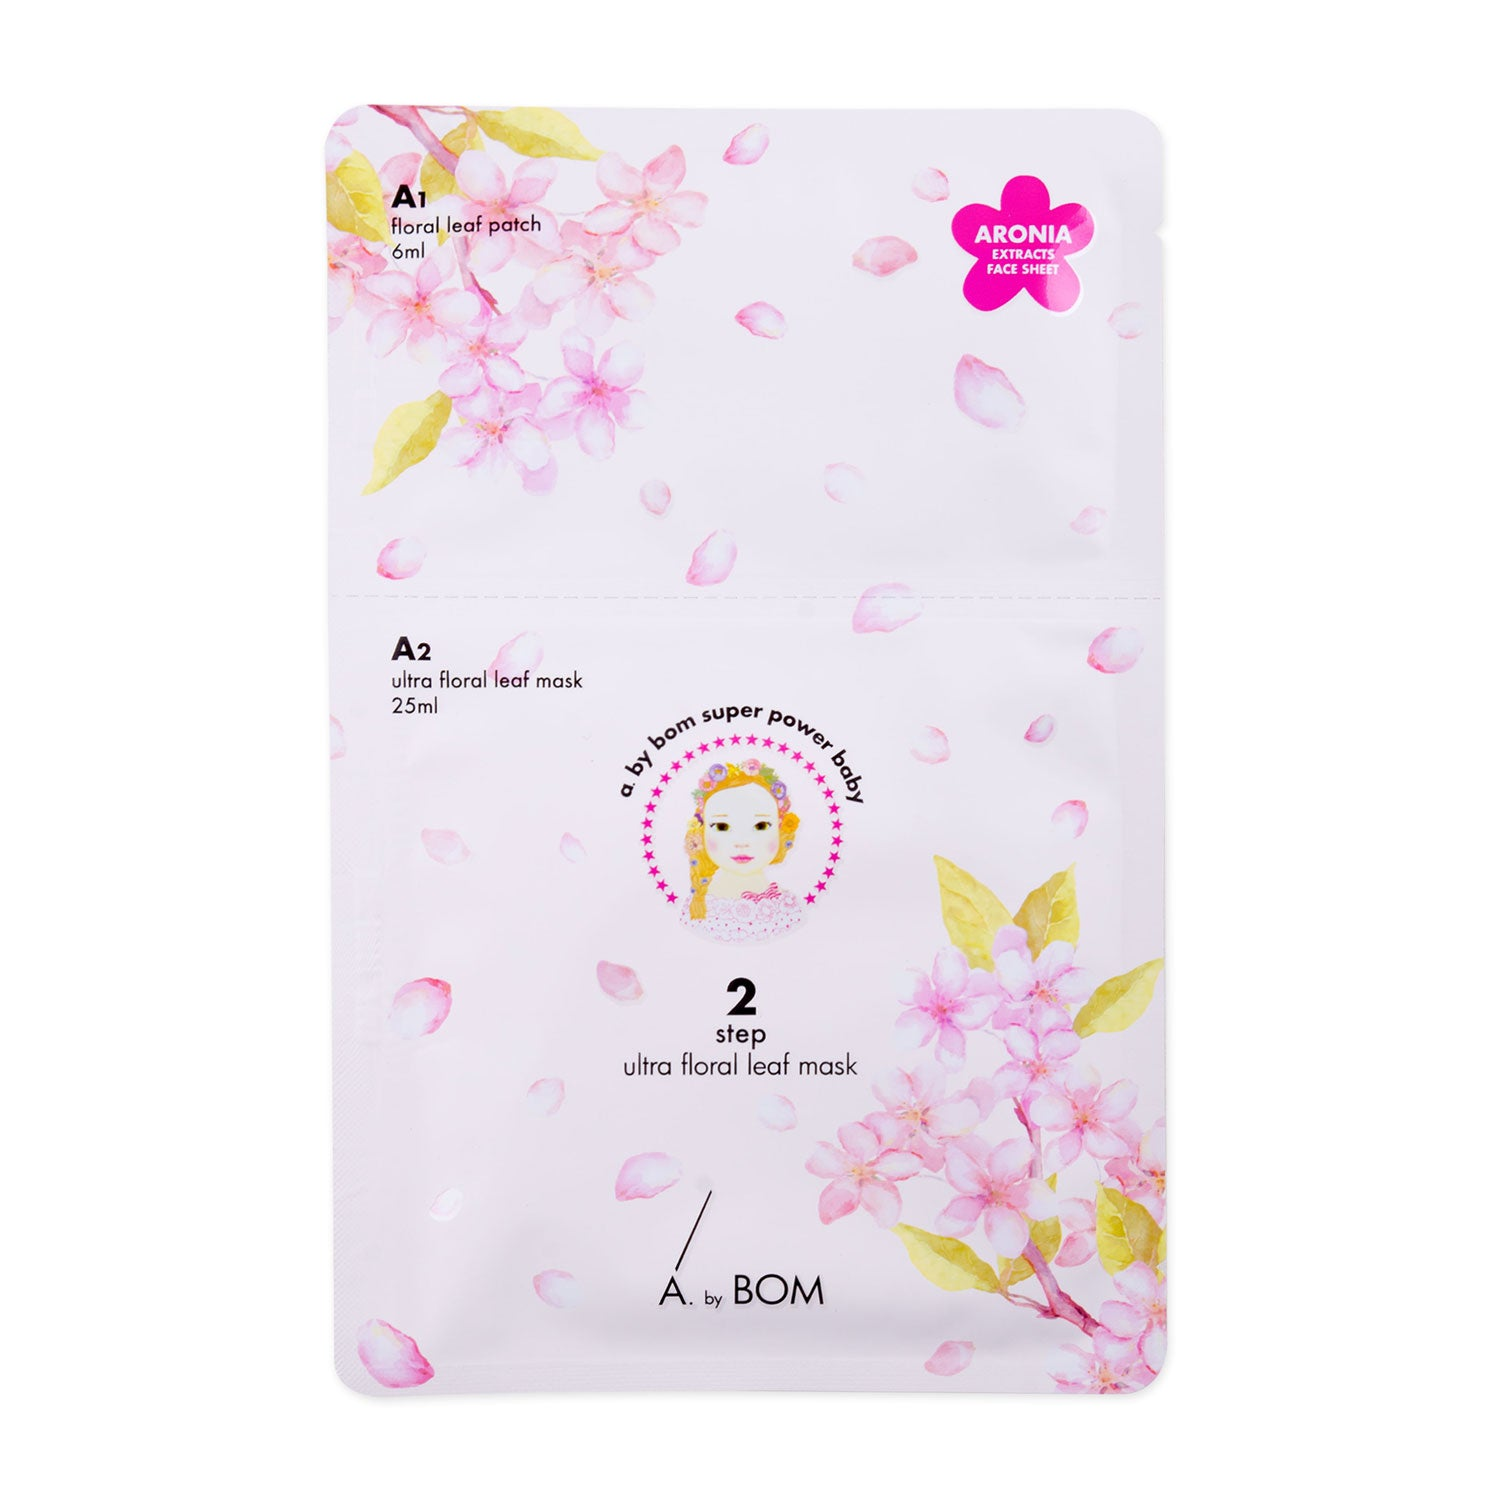 A By Bom 2-Step Super Power Baby Ultra Floral Mask, sheetmask,A by Bom, asian skincare